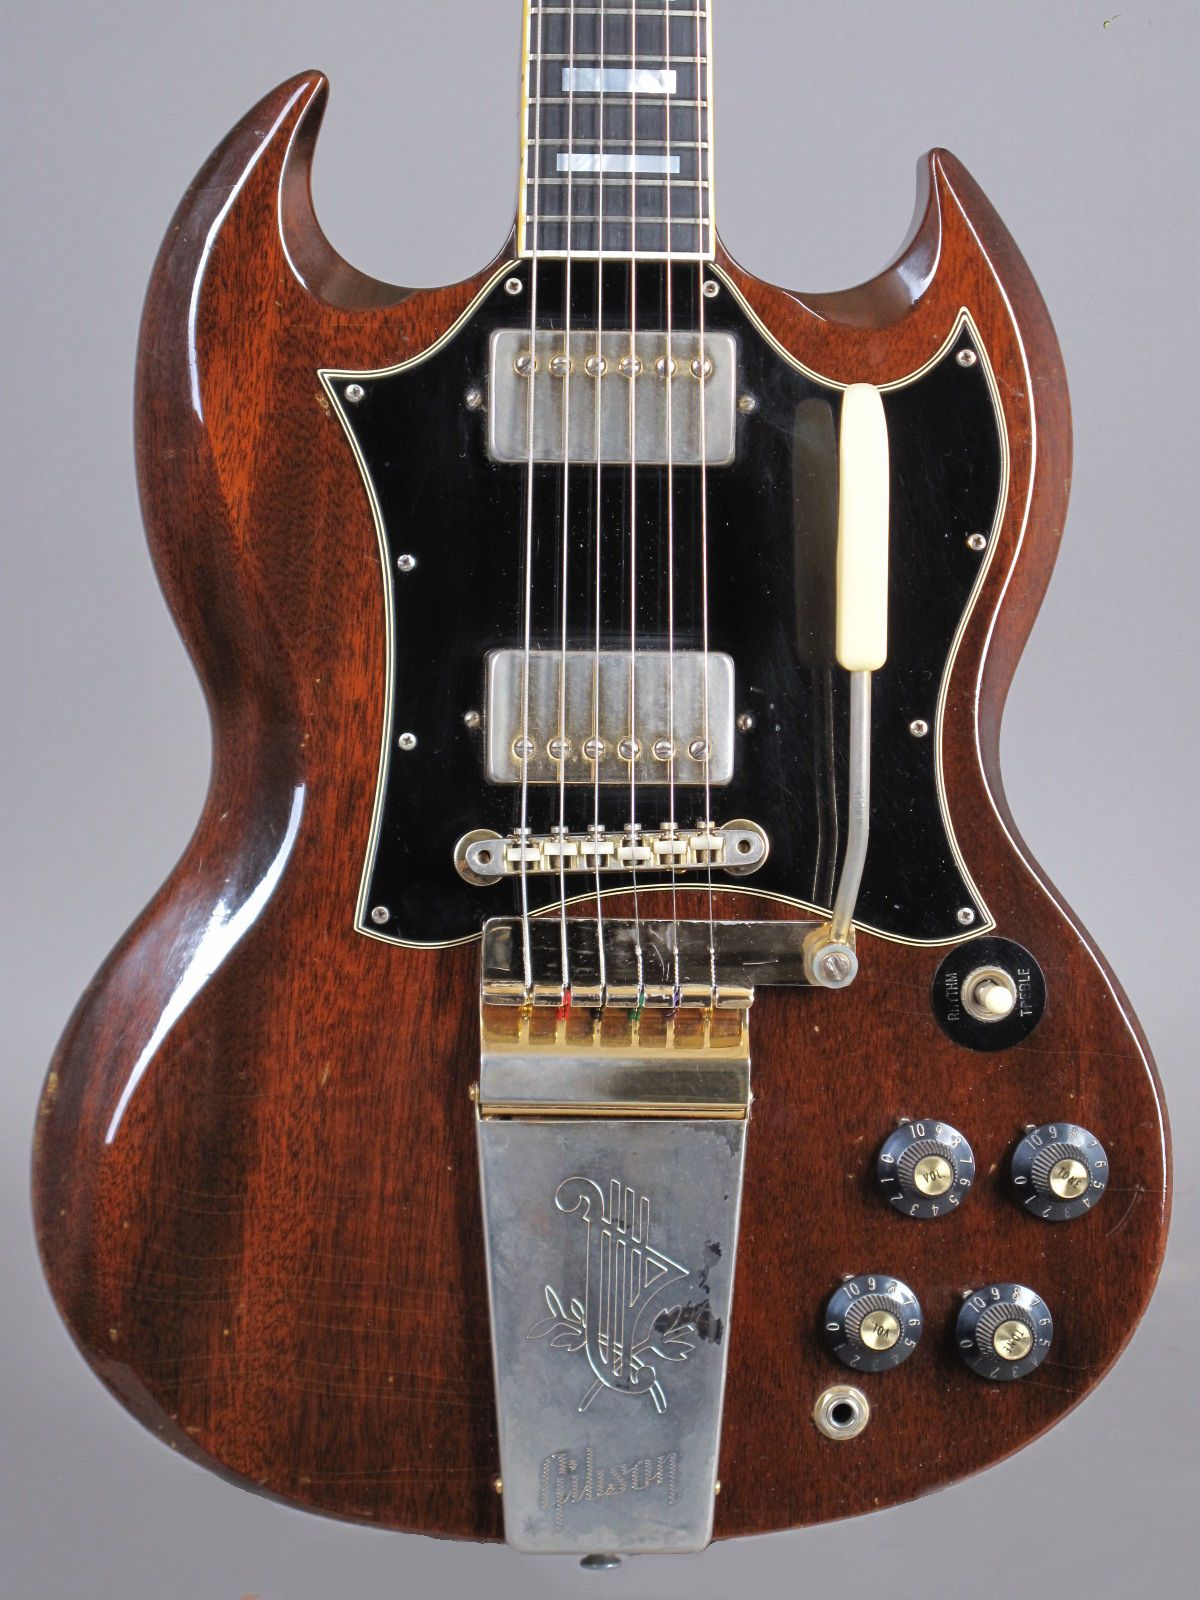 1969 Gibson SG Custom with removed middle pickup and 60's